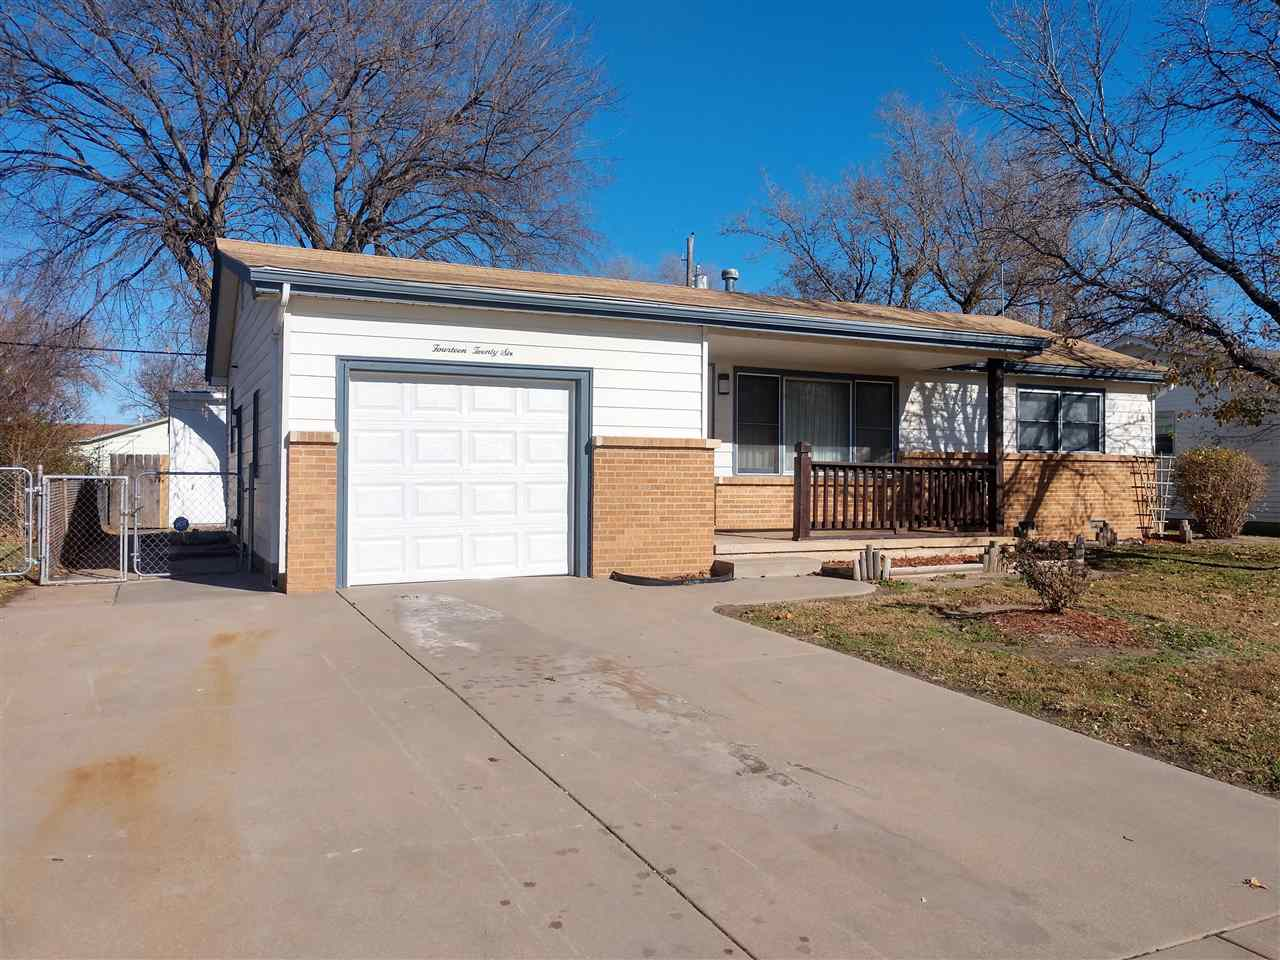 Move-in ready home in Southwest Wichita. Entering the home you'll notice the tasteful updates and cl